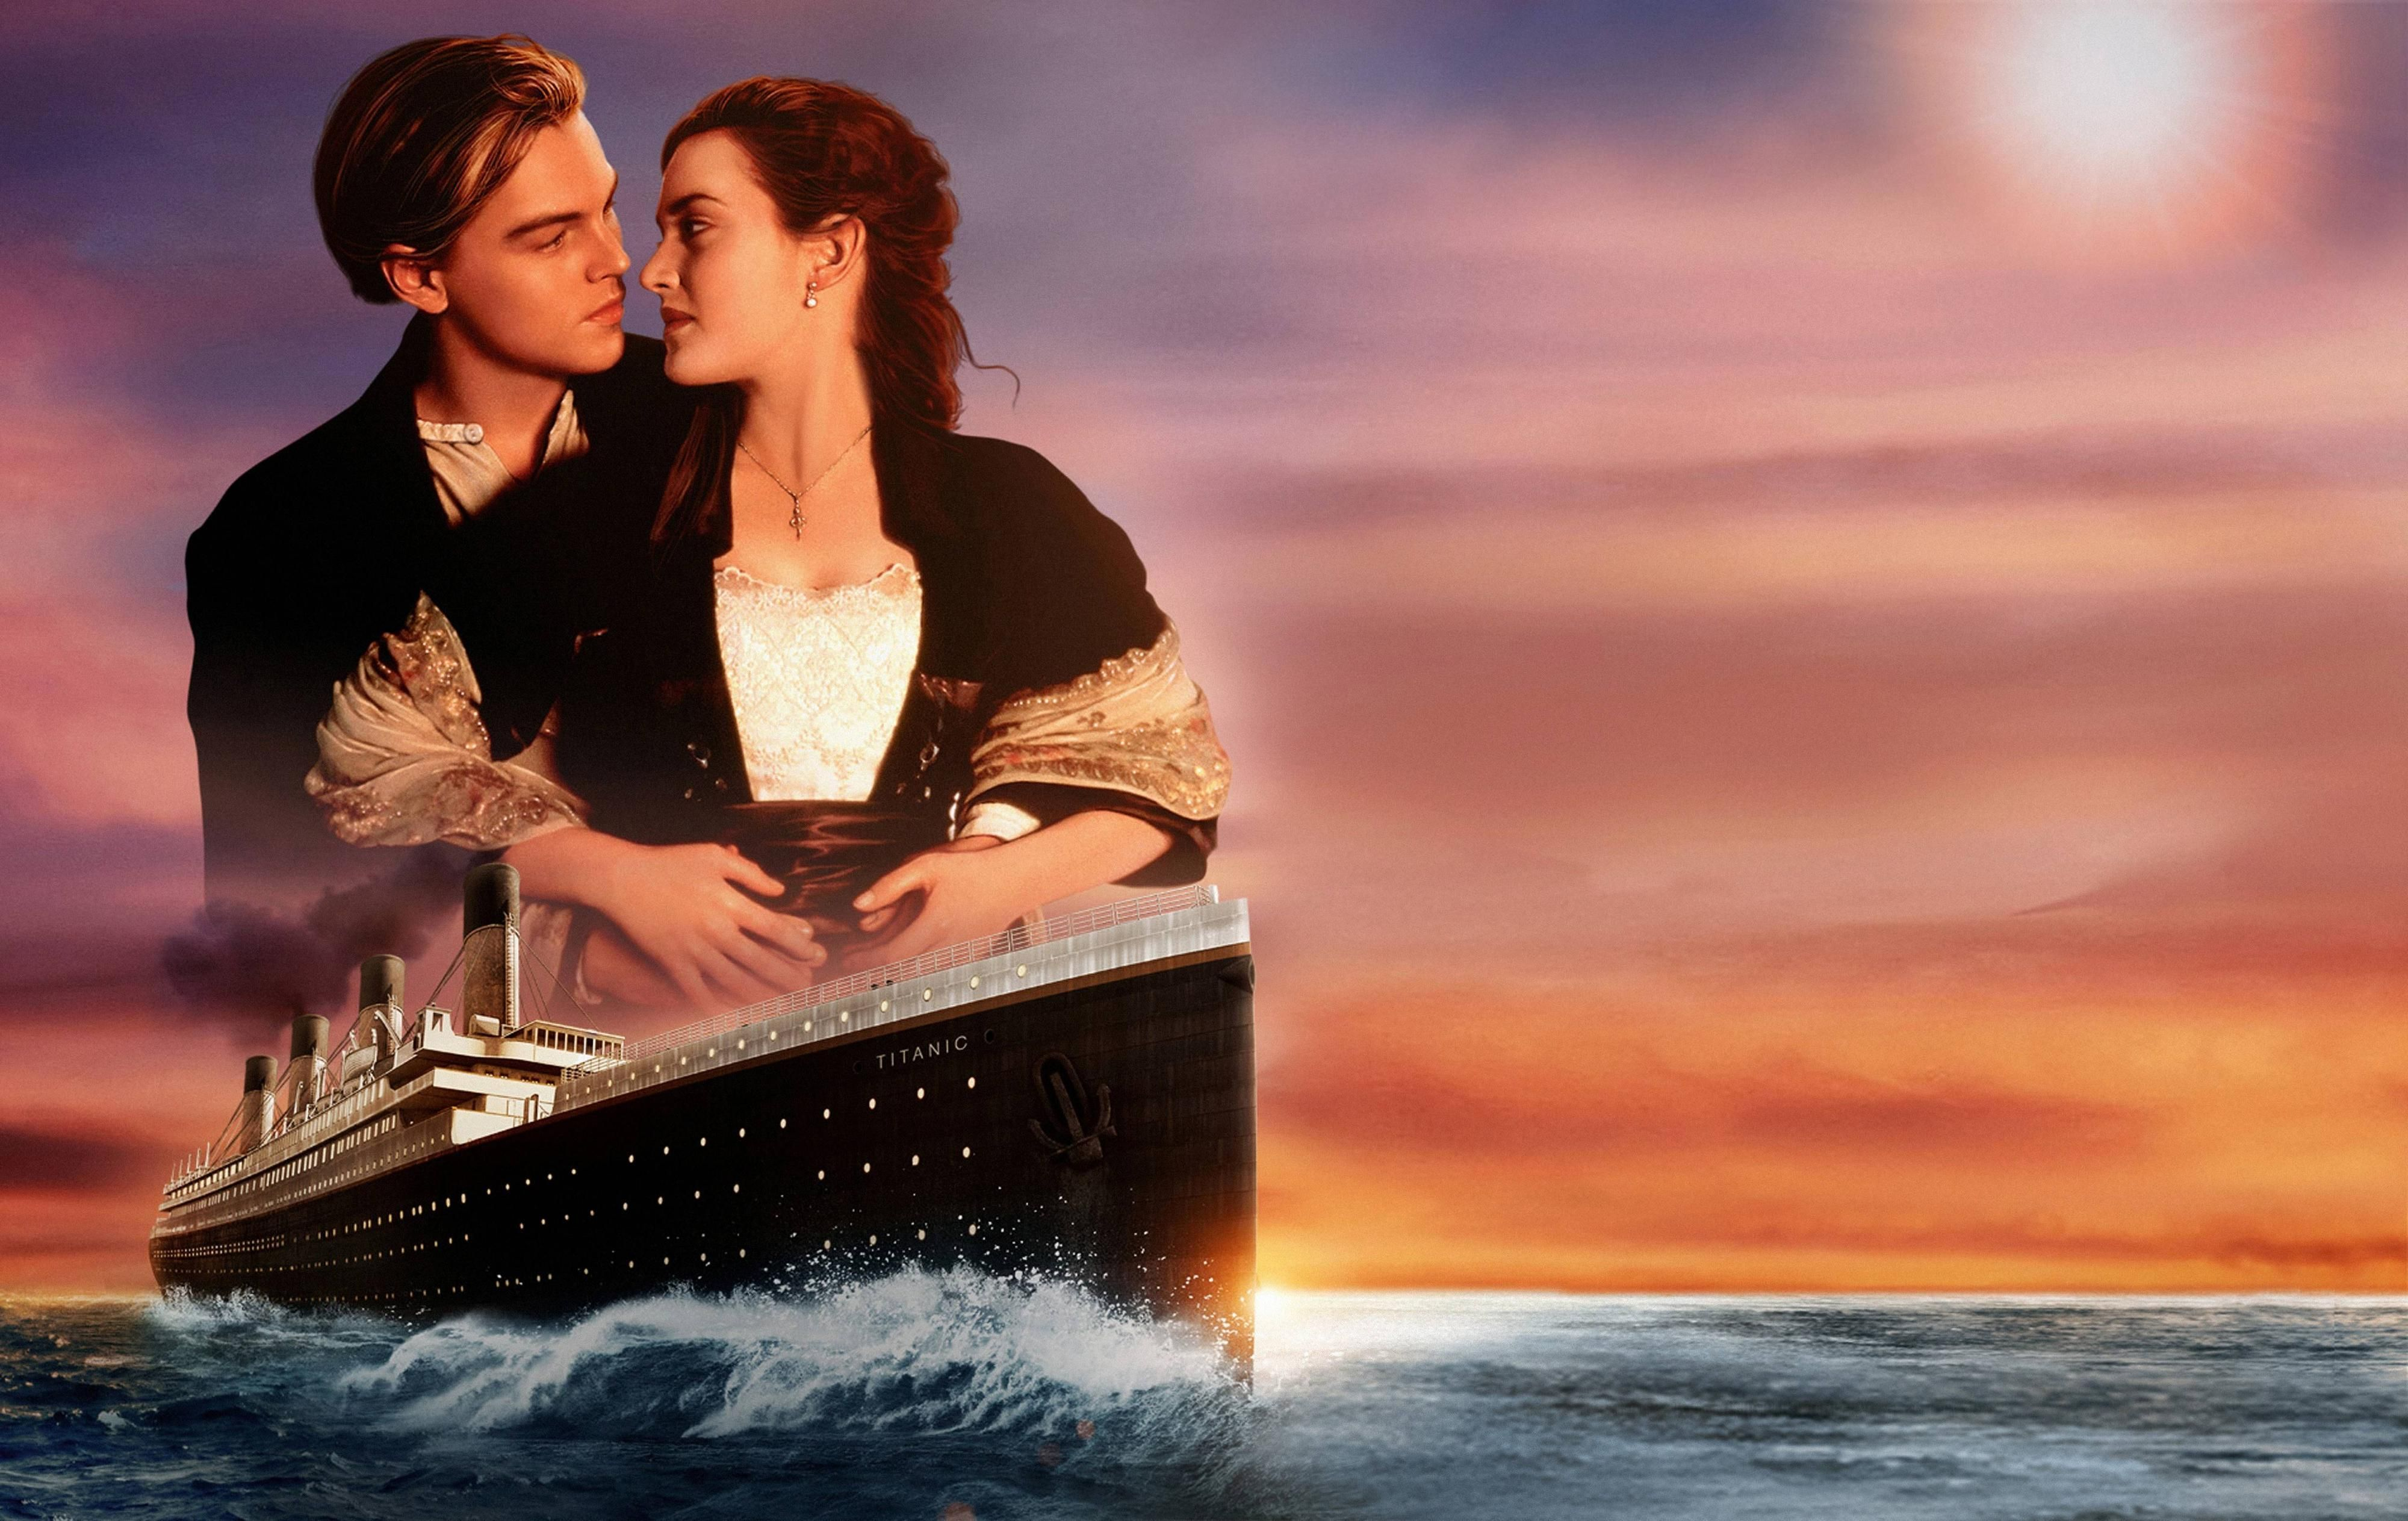 Titanic Movie Titanic Movie Wallpapers Wallpaper Cave Titanic Movie Romantic Movies Titanic Poster